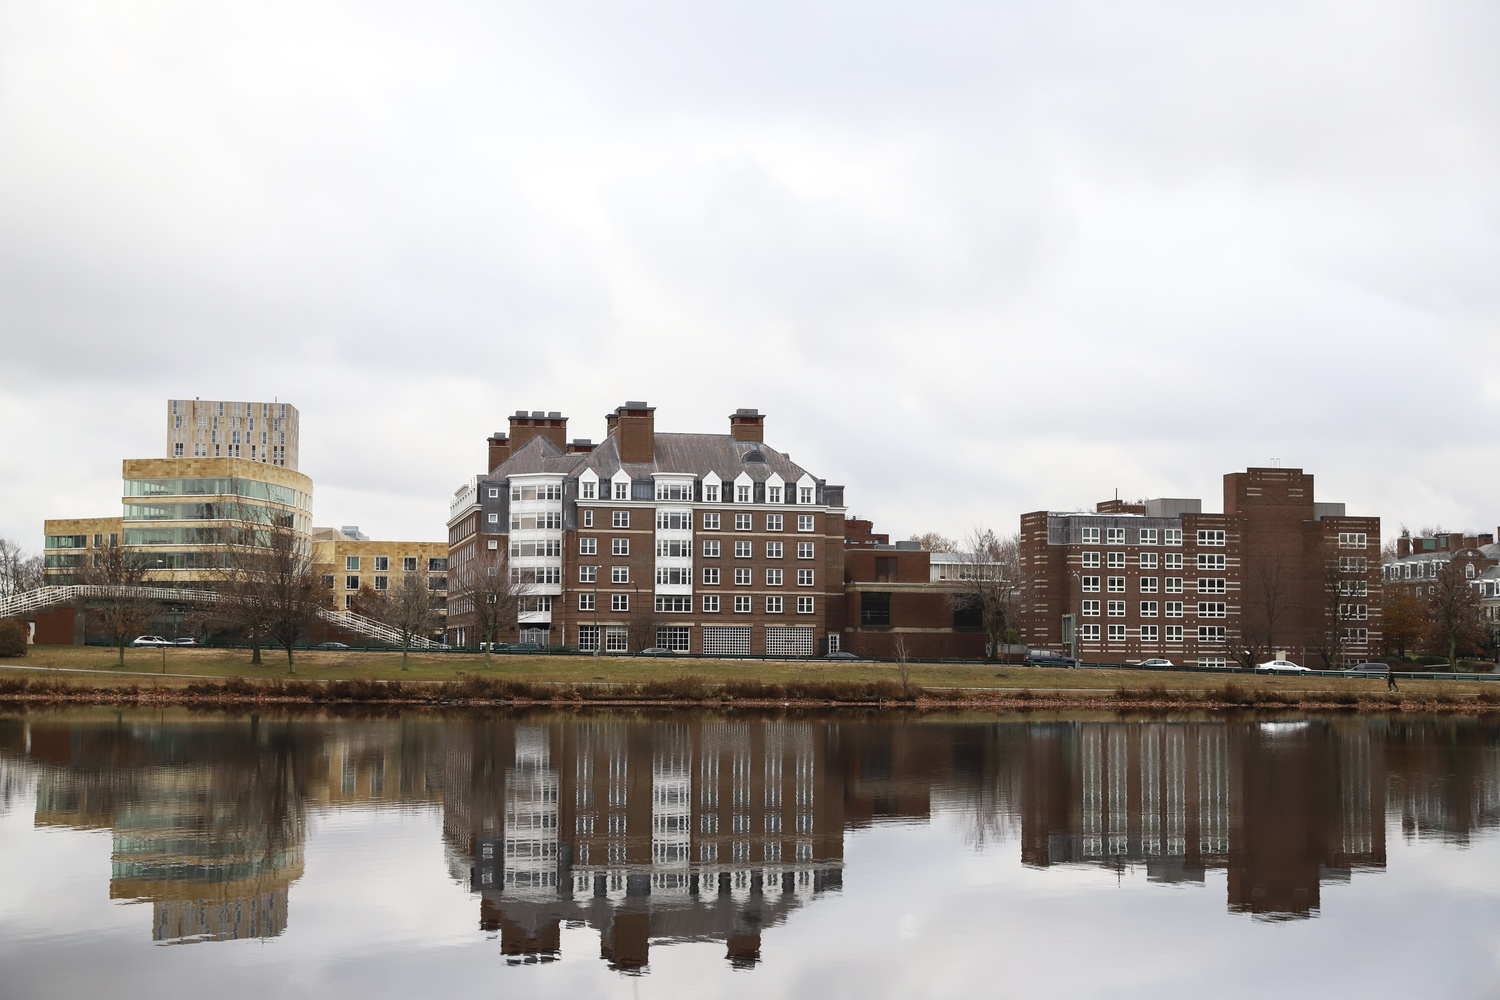 The Harvard Business School campus is located across the Charles River.